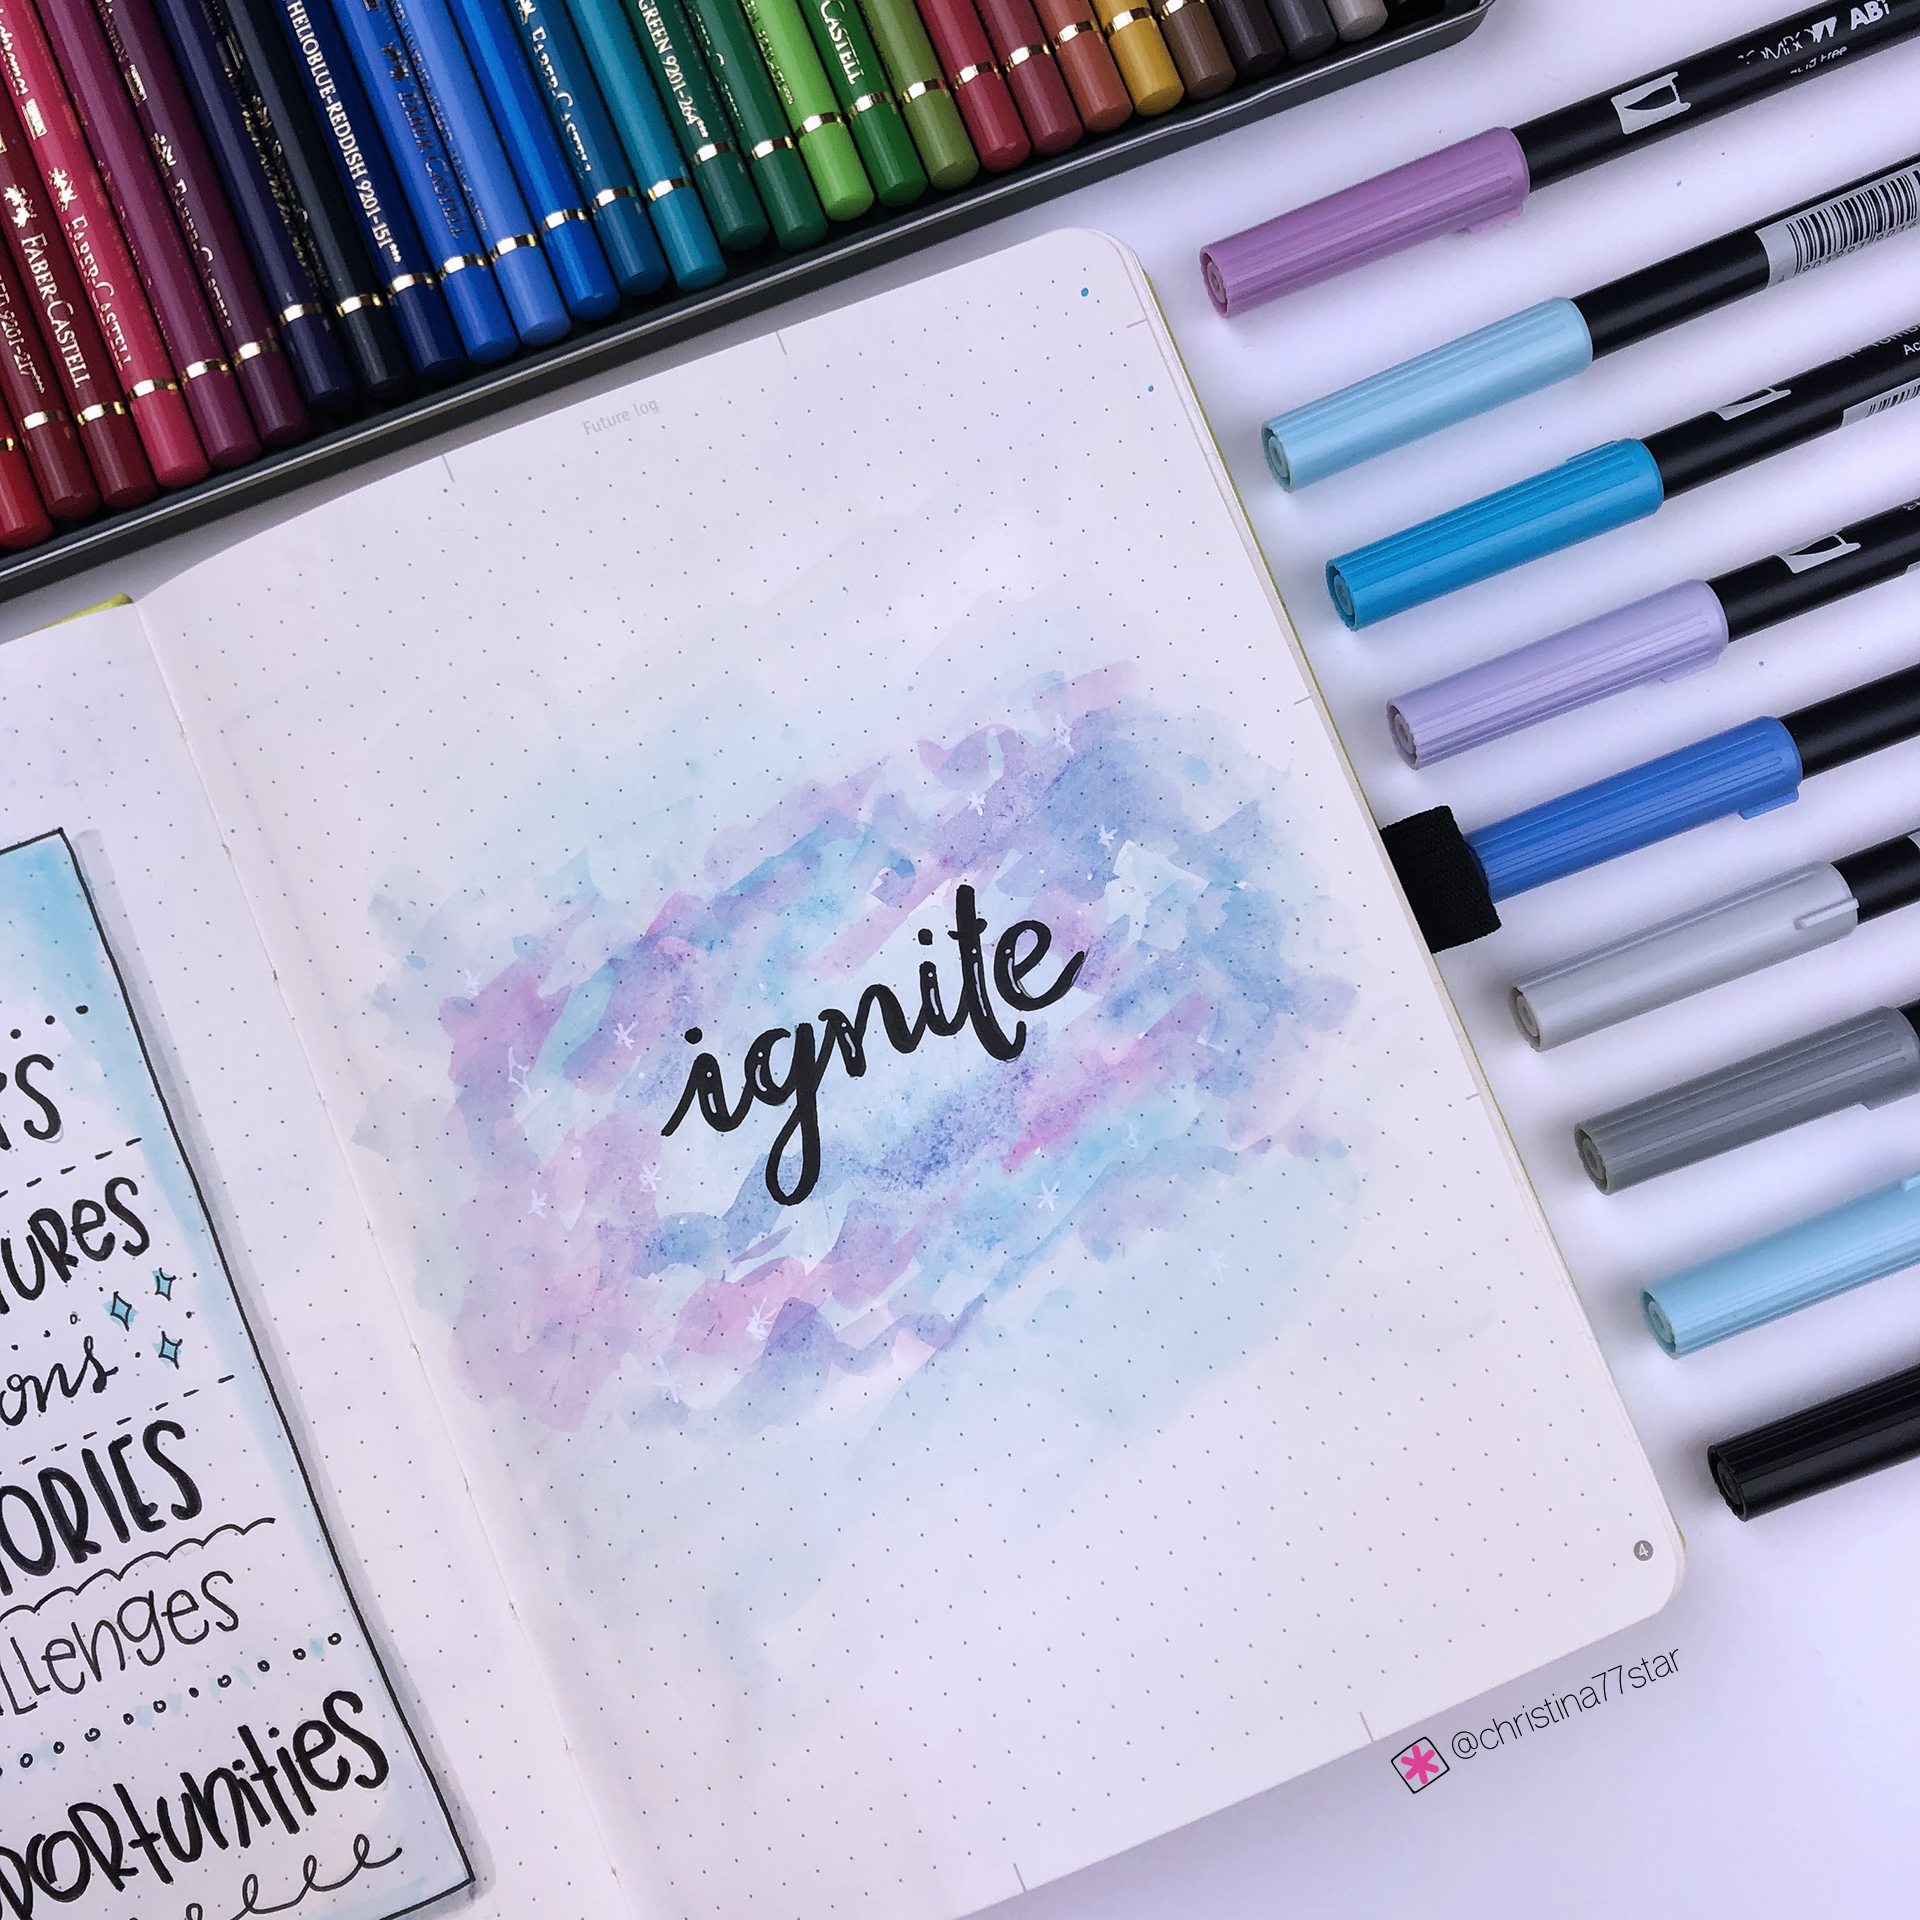 2019 bullet journal setup - Word of the Year - www.christina77star.net